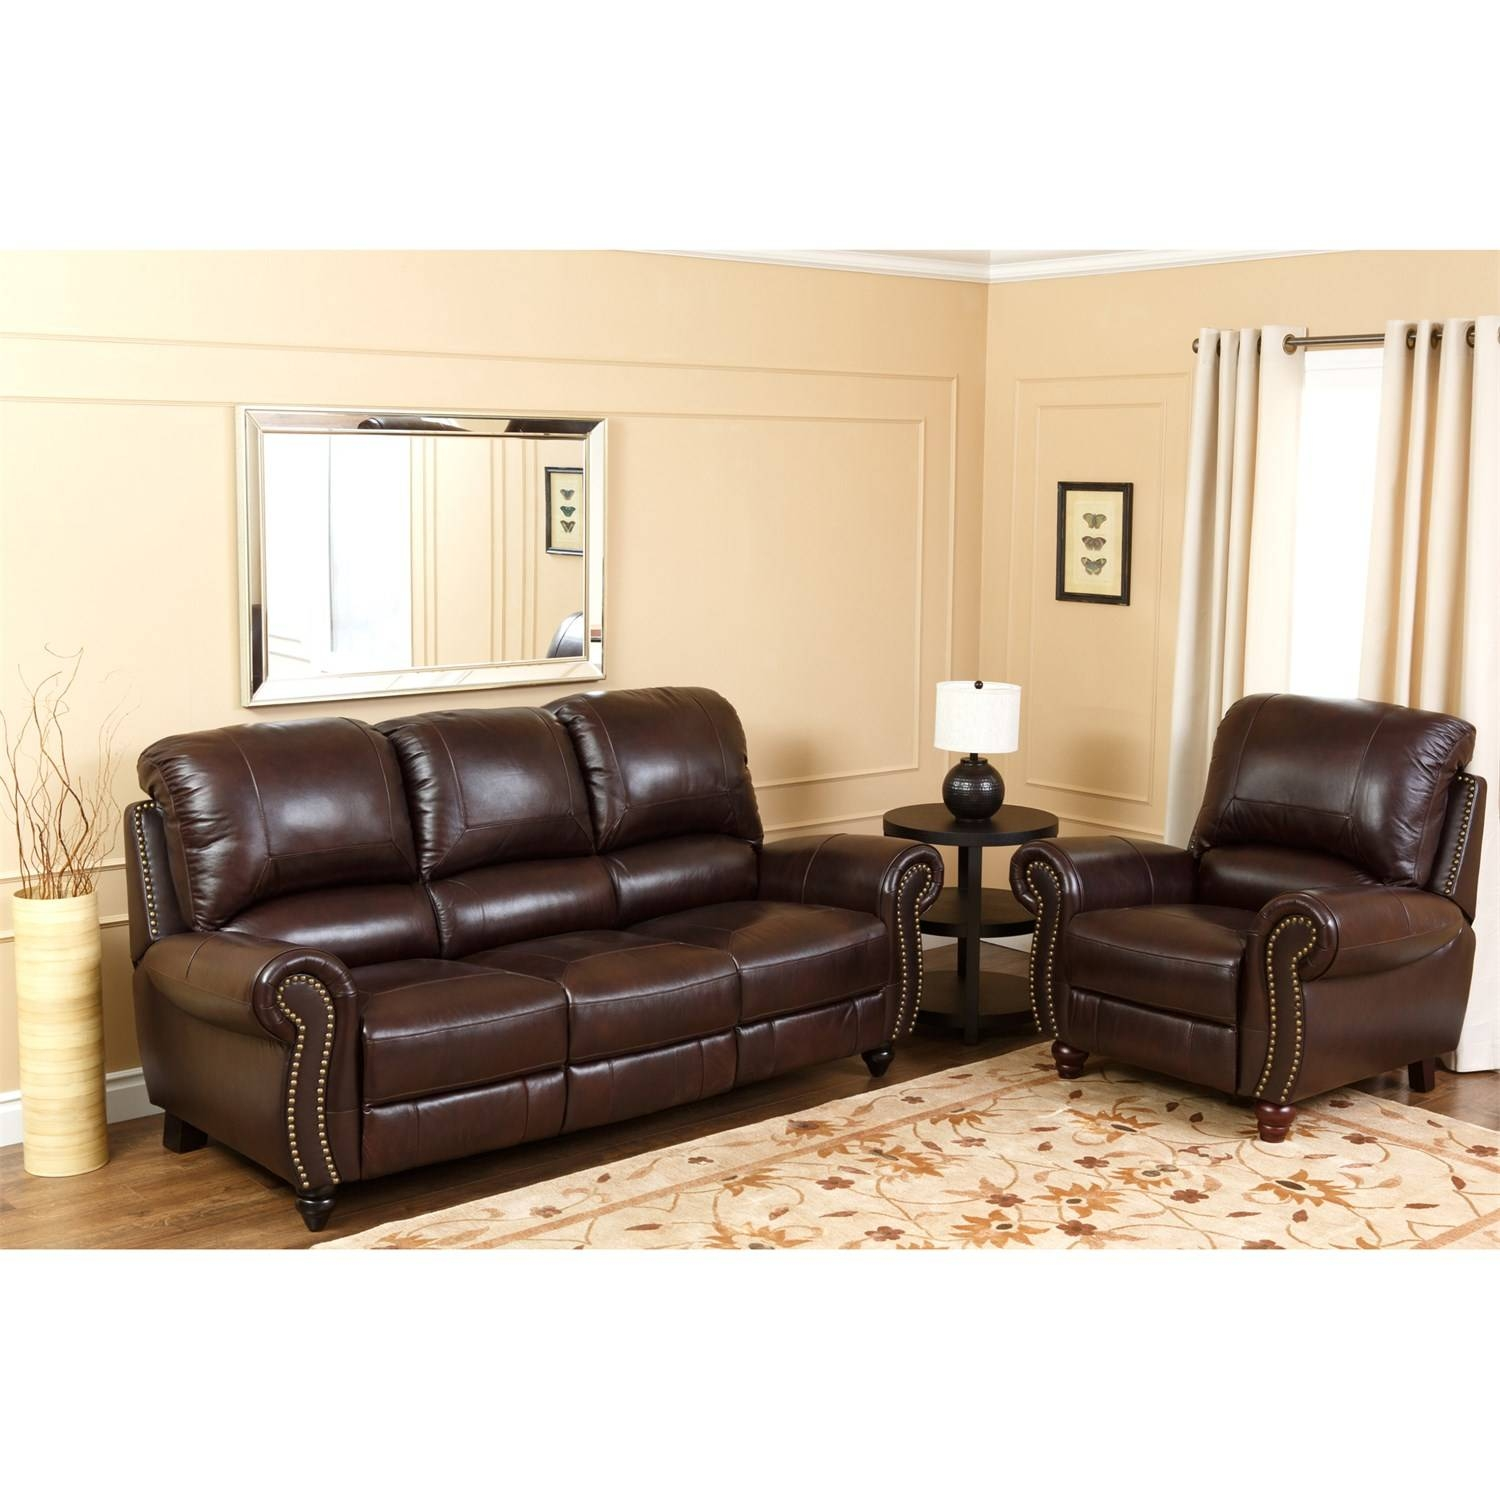 Abbyson Living Ch-8857-Brg-3/1 Canterbury Leather Pushback with regard to Abbyson Sofas (Image 4 of 15)